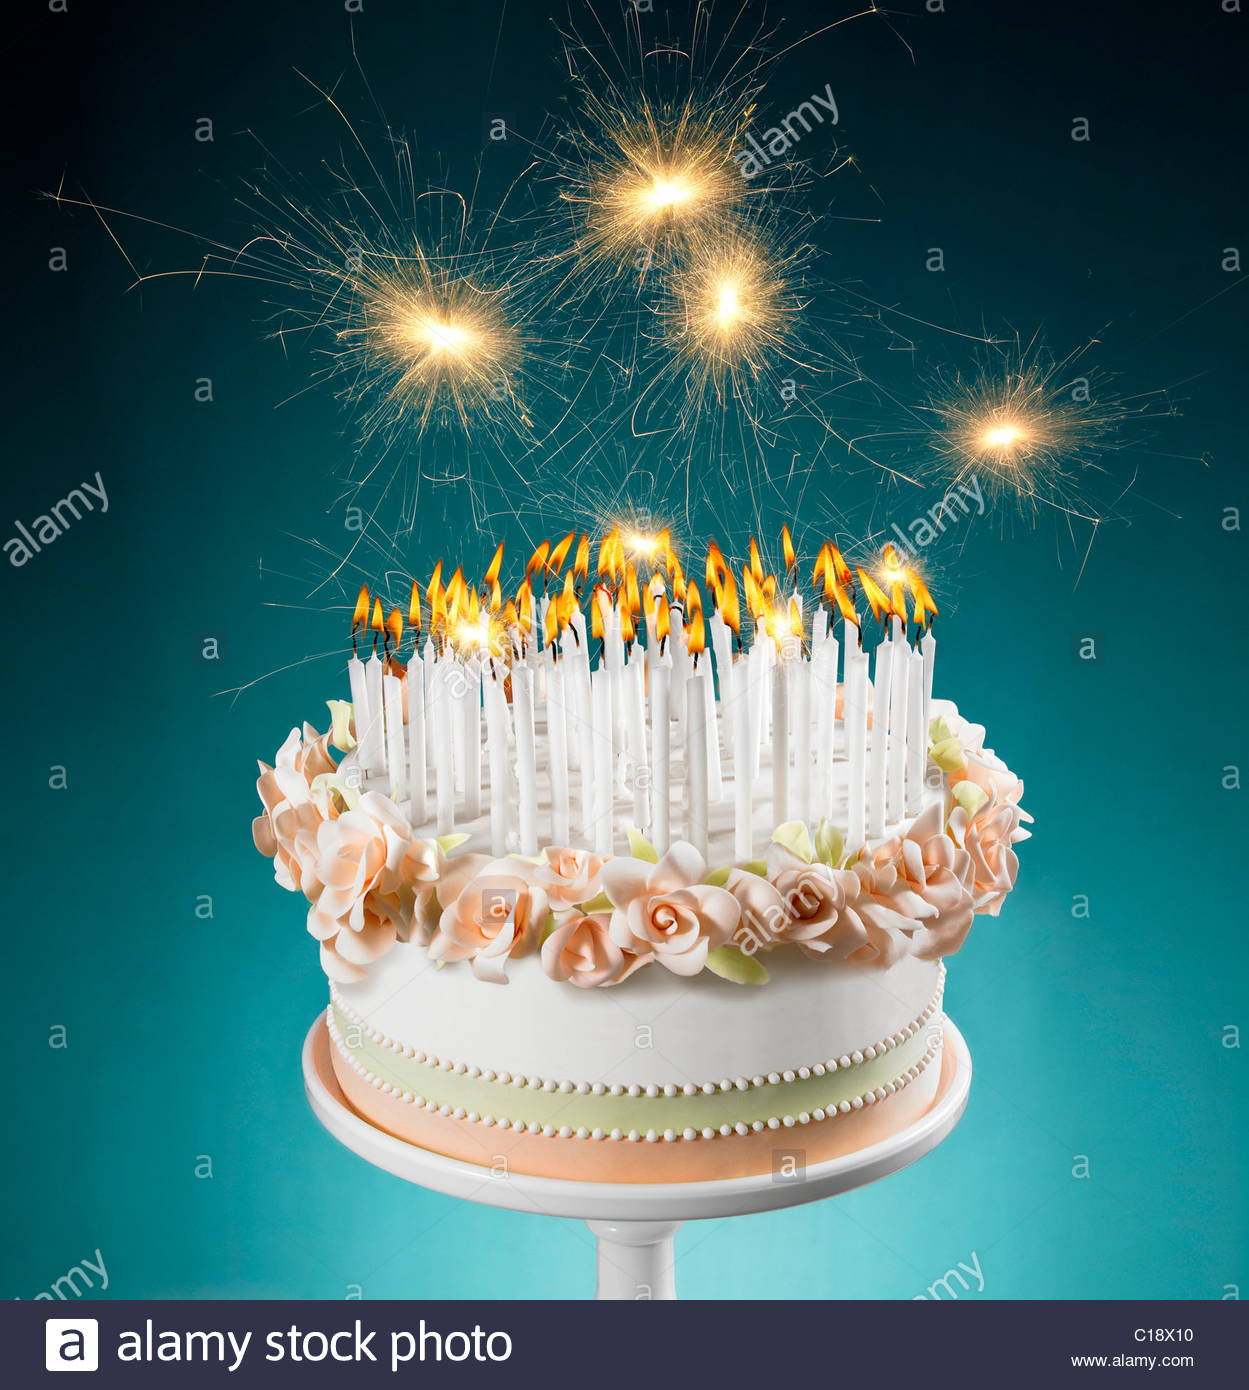 picture of birthday cake with burning candles ; birthday-cake-with-lots-of-burning-candles-C18X10